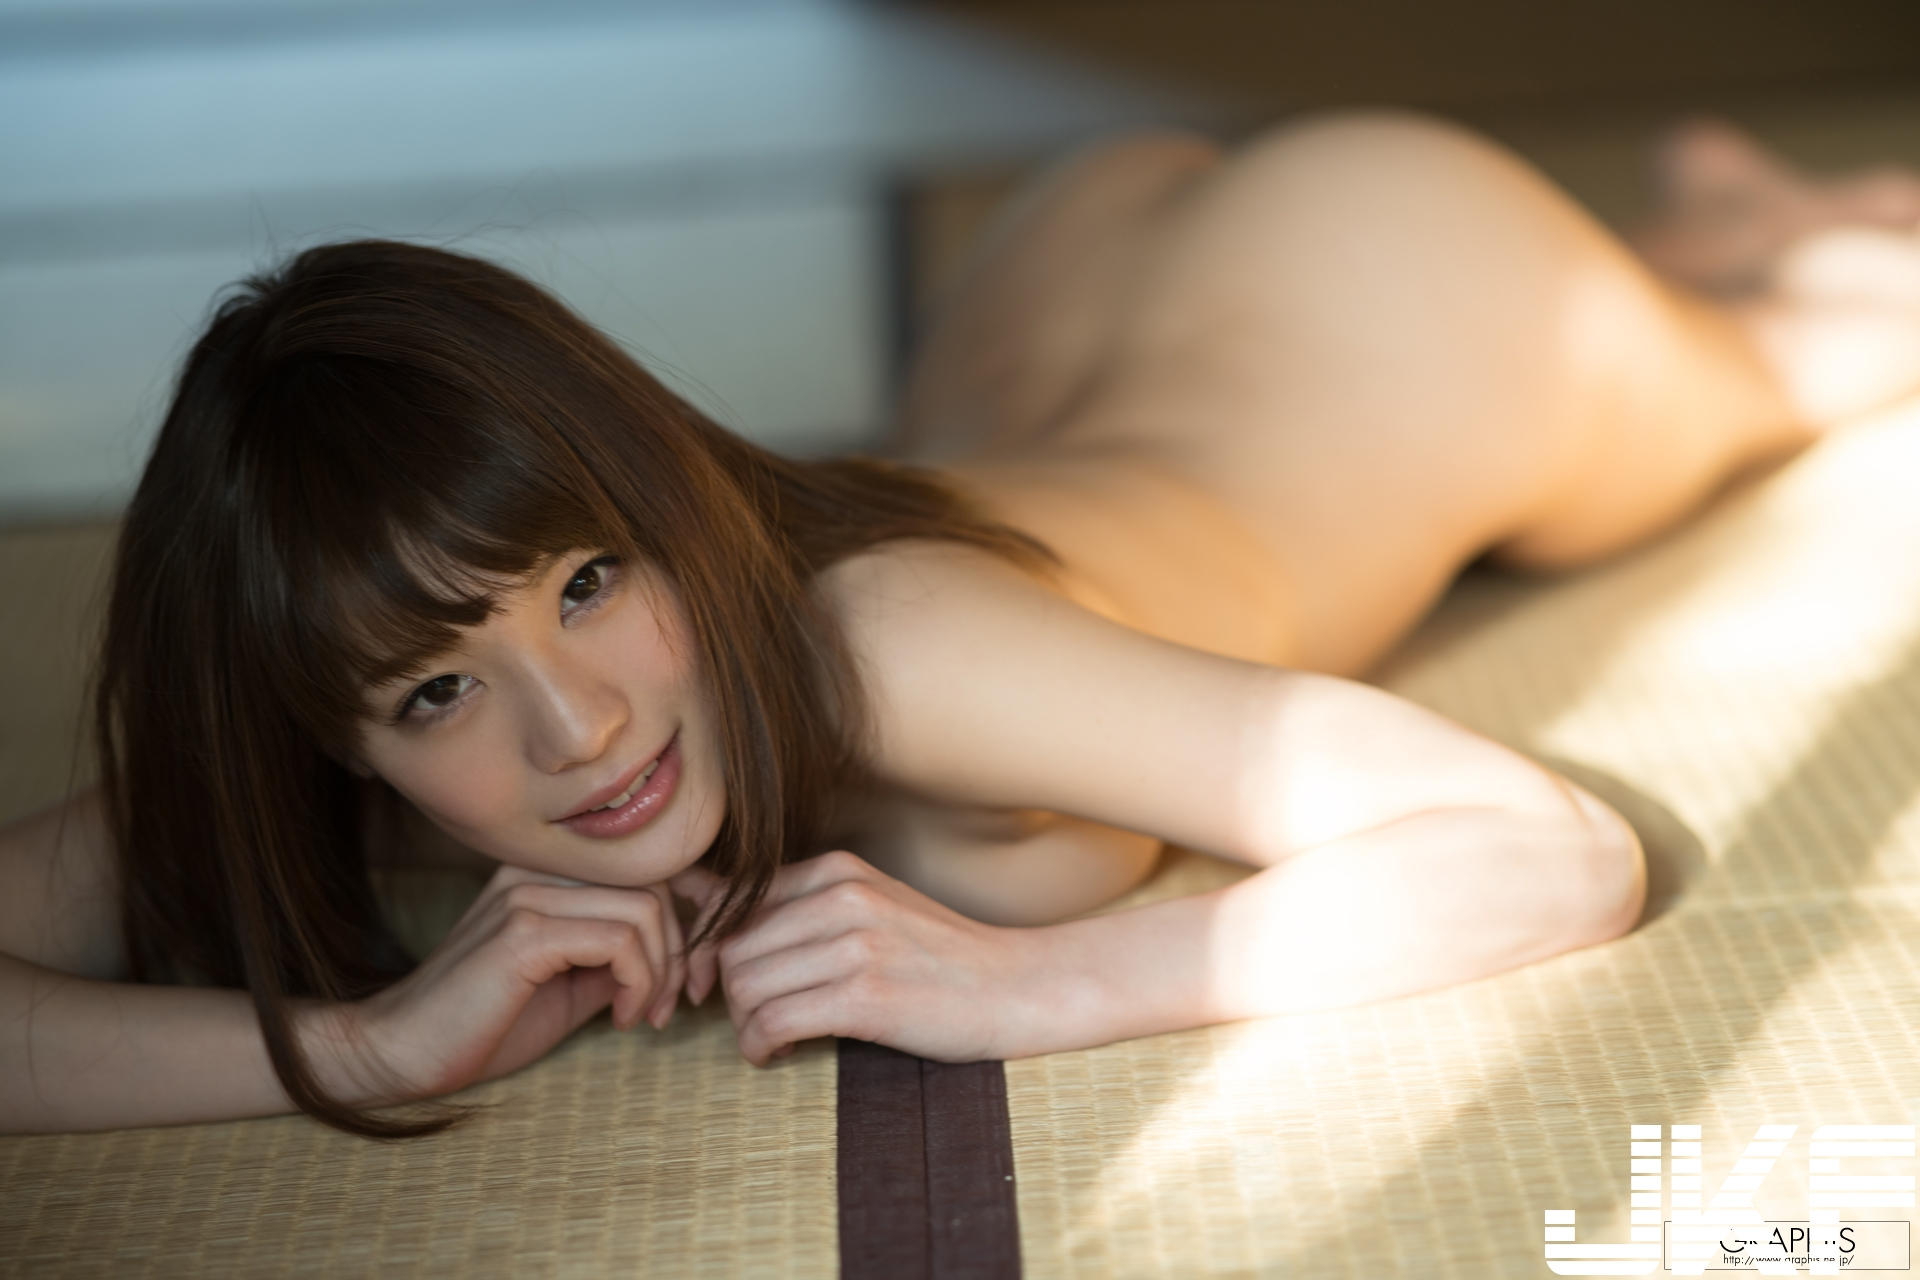 [Graphis]  Limited Edition 鈴村あいり Airi Suzumura - 貼圖 - 清涼寫真 -